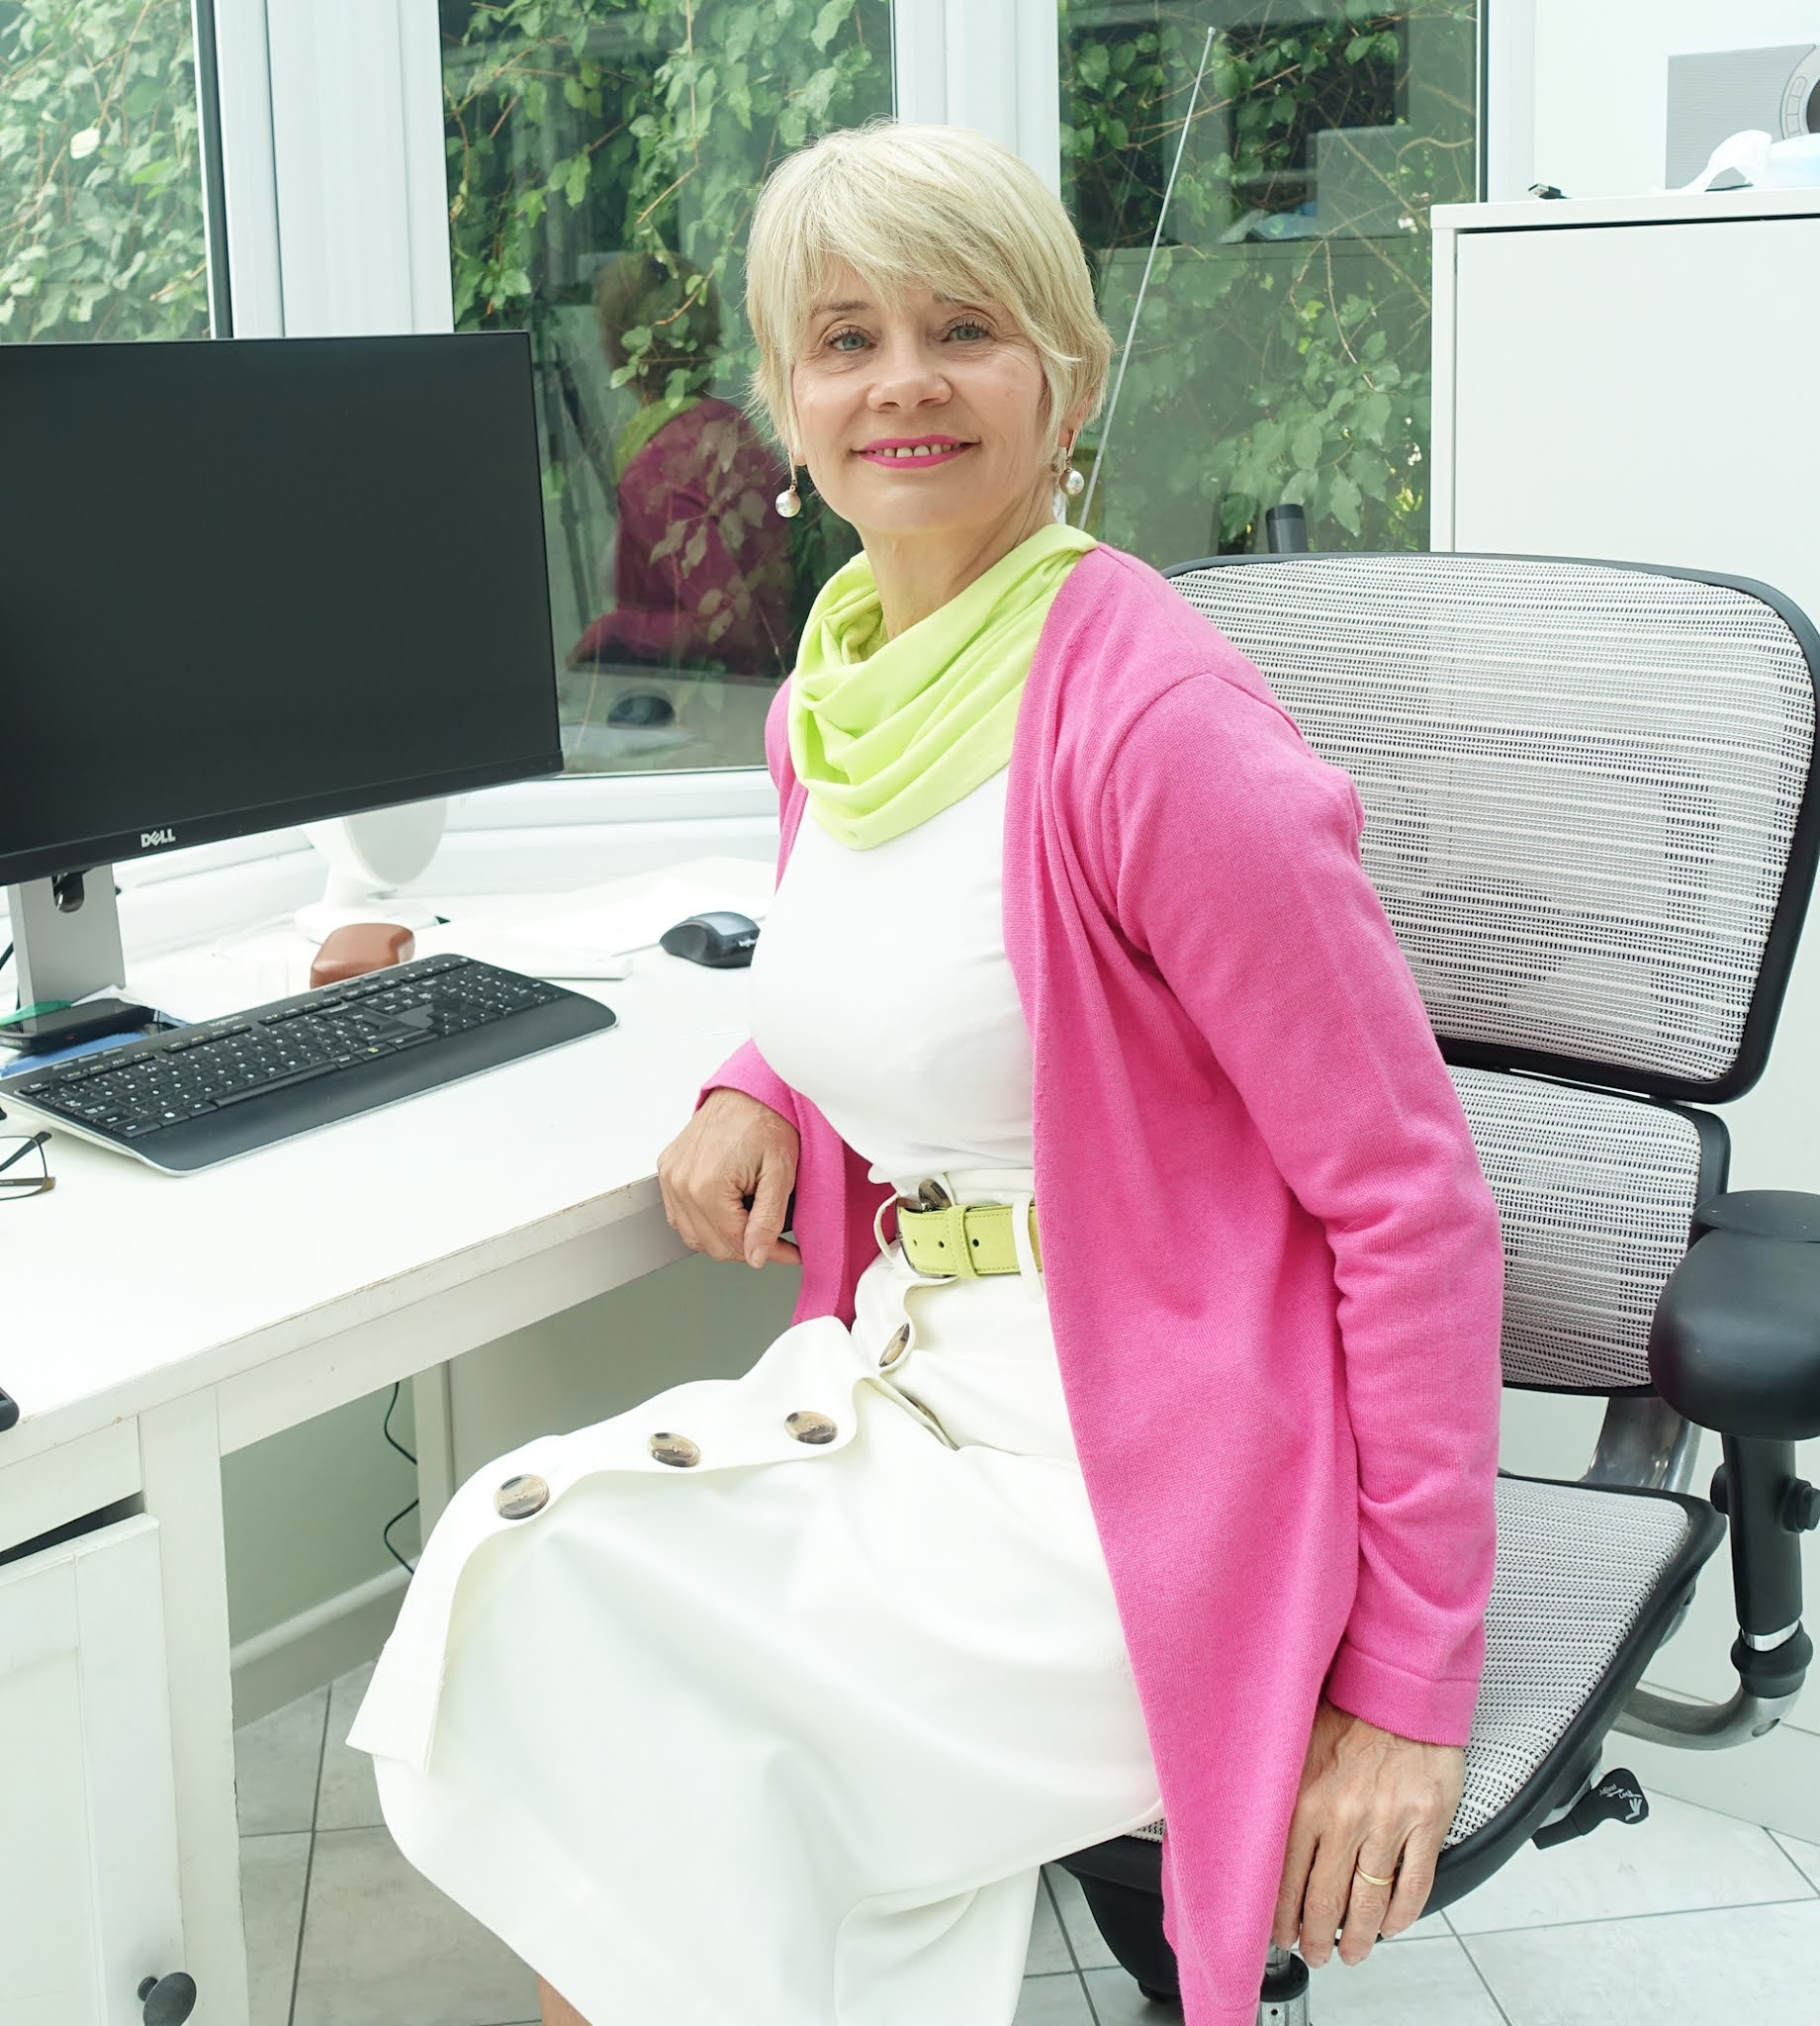 Over-50s style blogger Gail Hanlon from Is This Mutton undertakes a colour challenge to create an outfit based on cerise pink, acid yellow and white